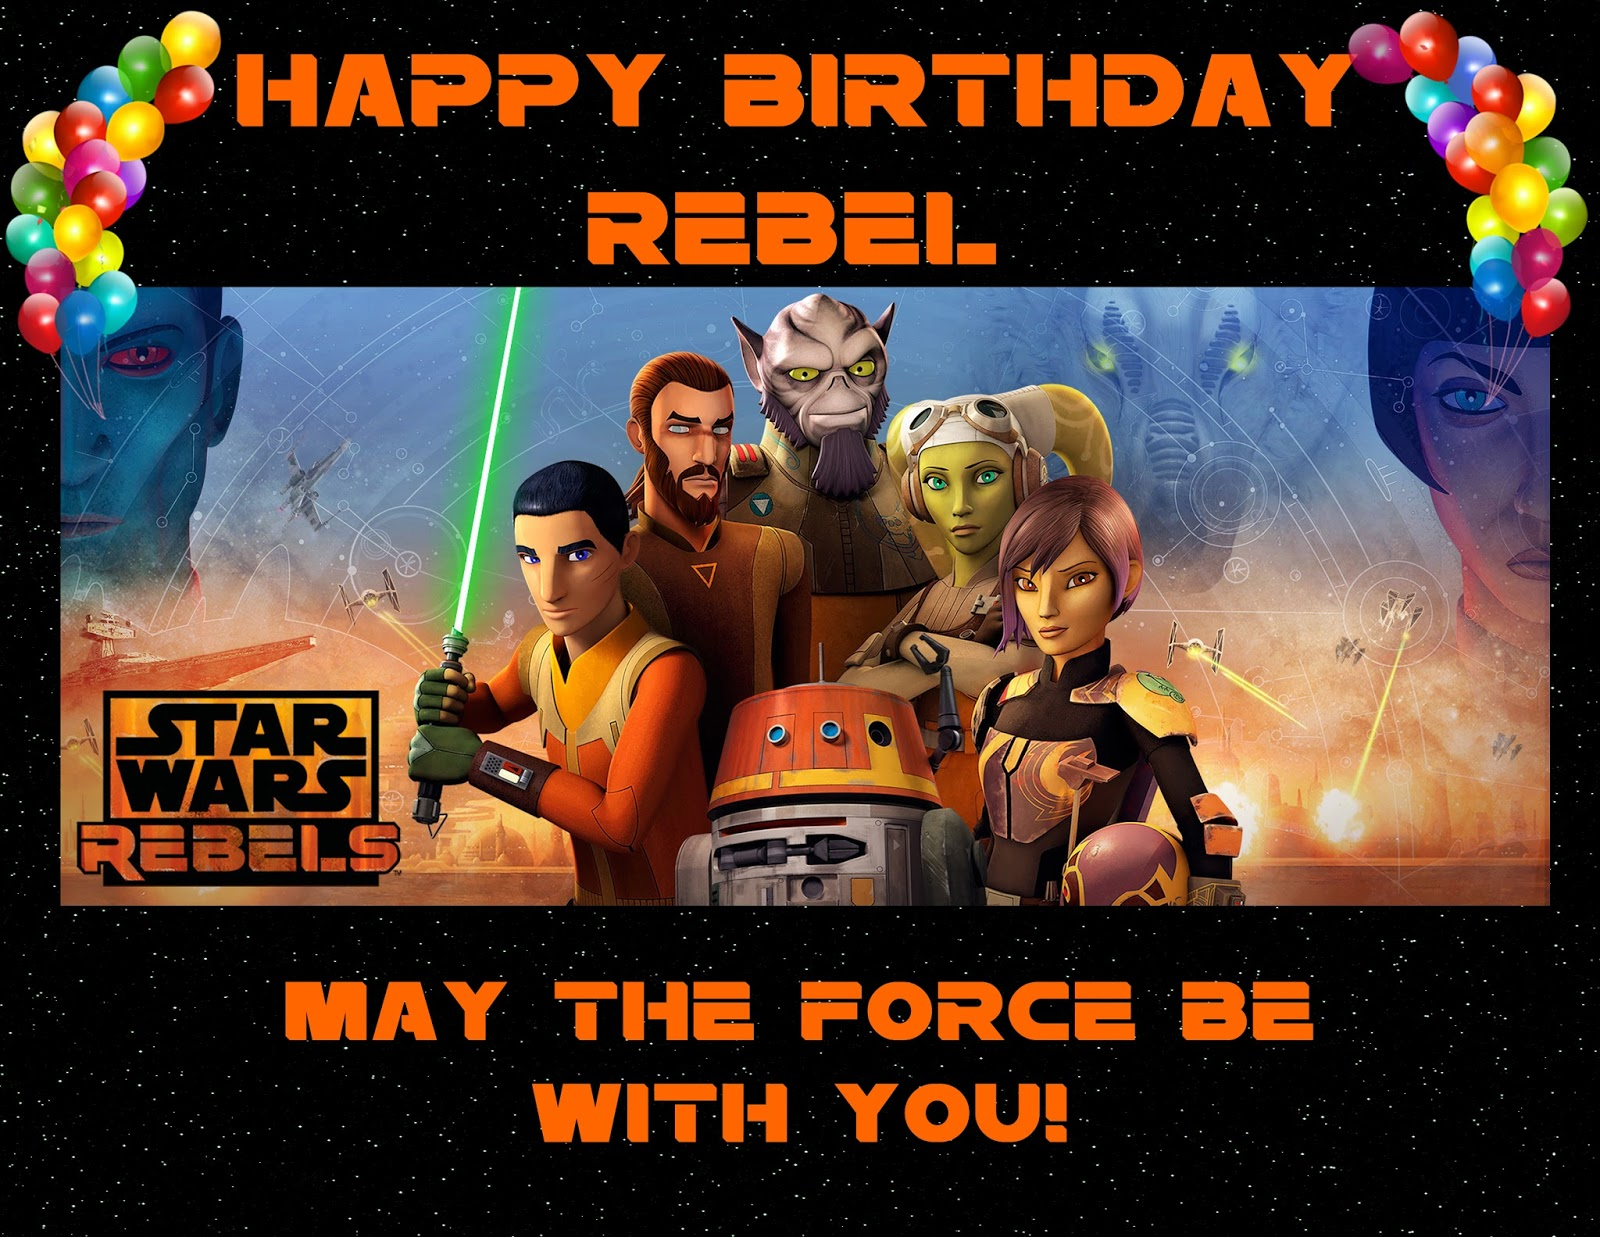 Star Wars Rebels Party Banner